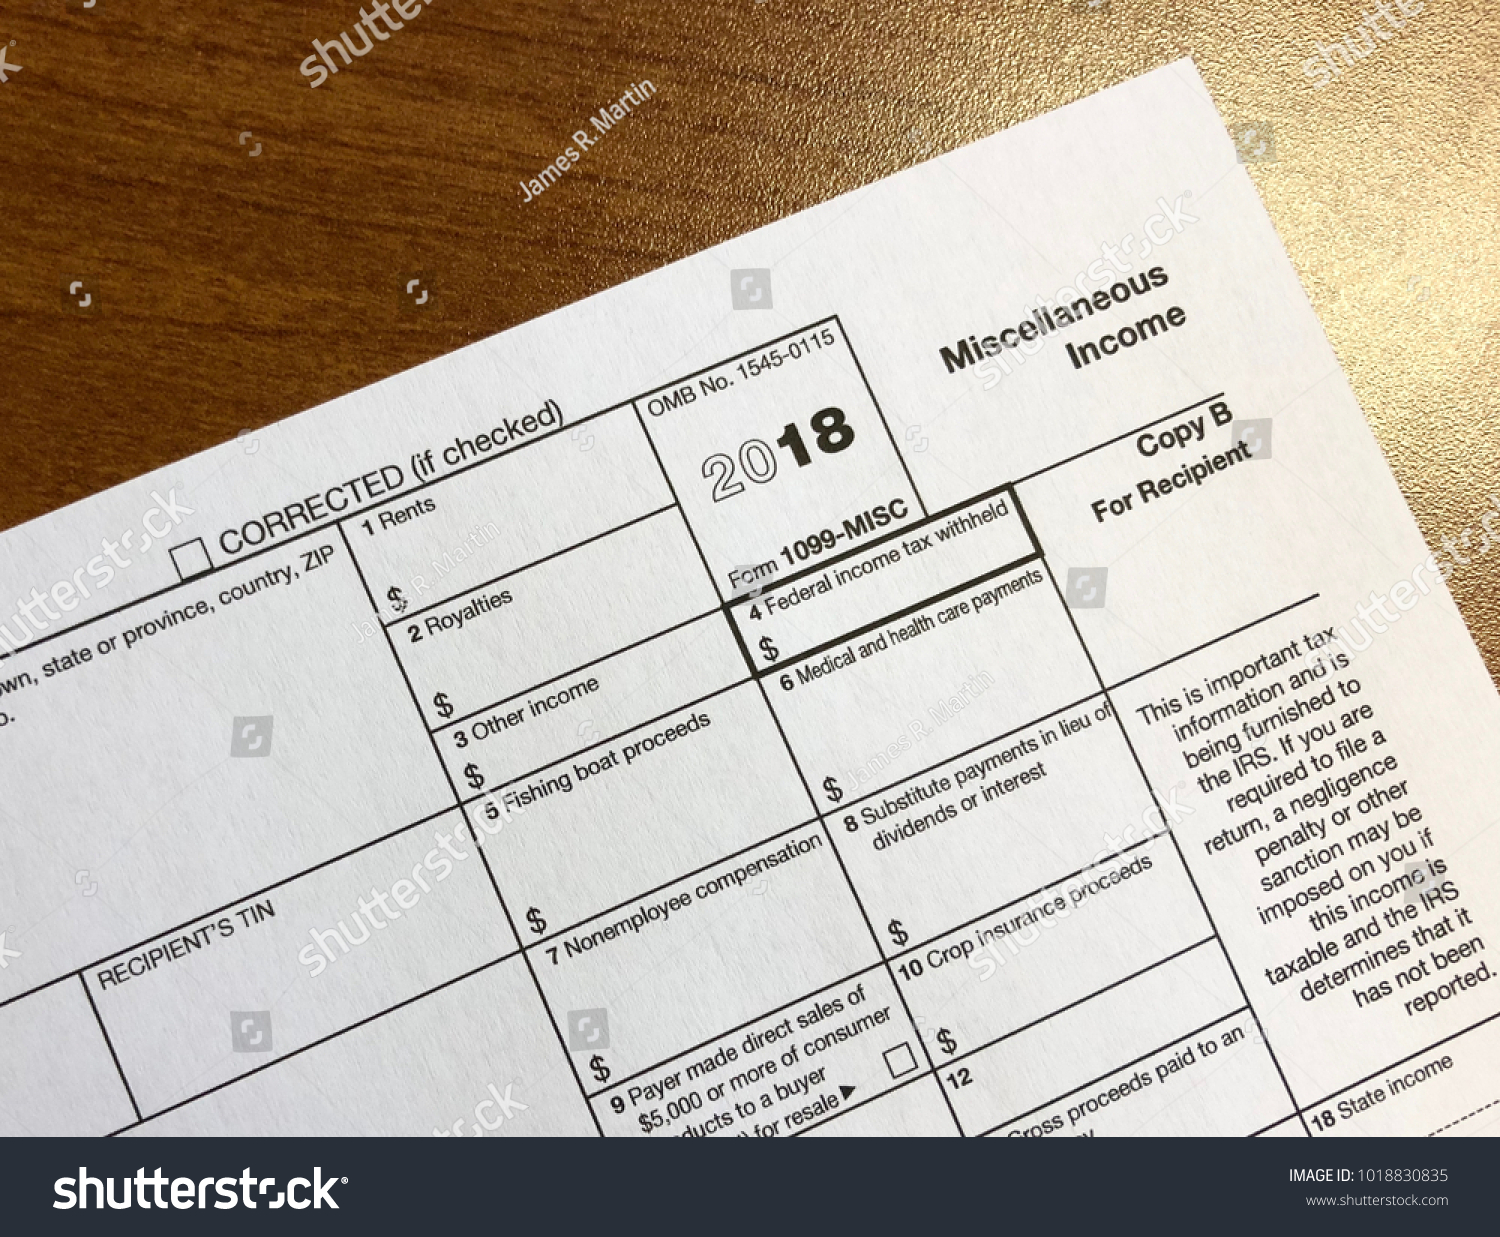 Irs Tax Form 1099 Miscellaneous Income Stock Photo Edit Now